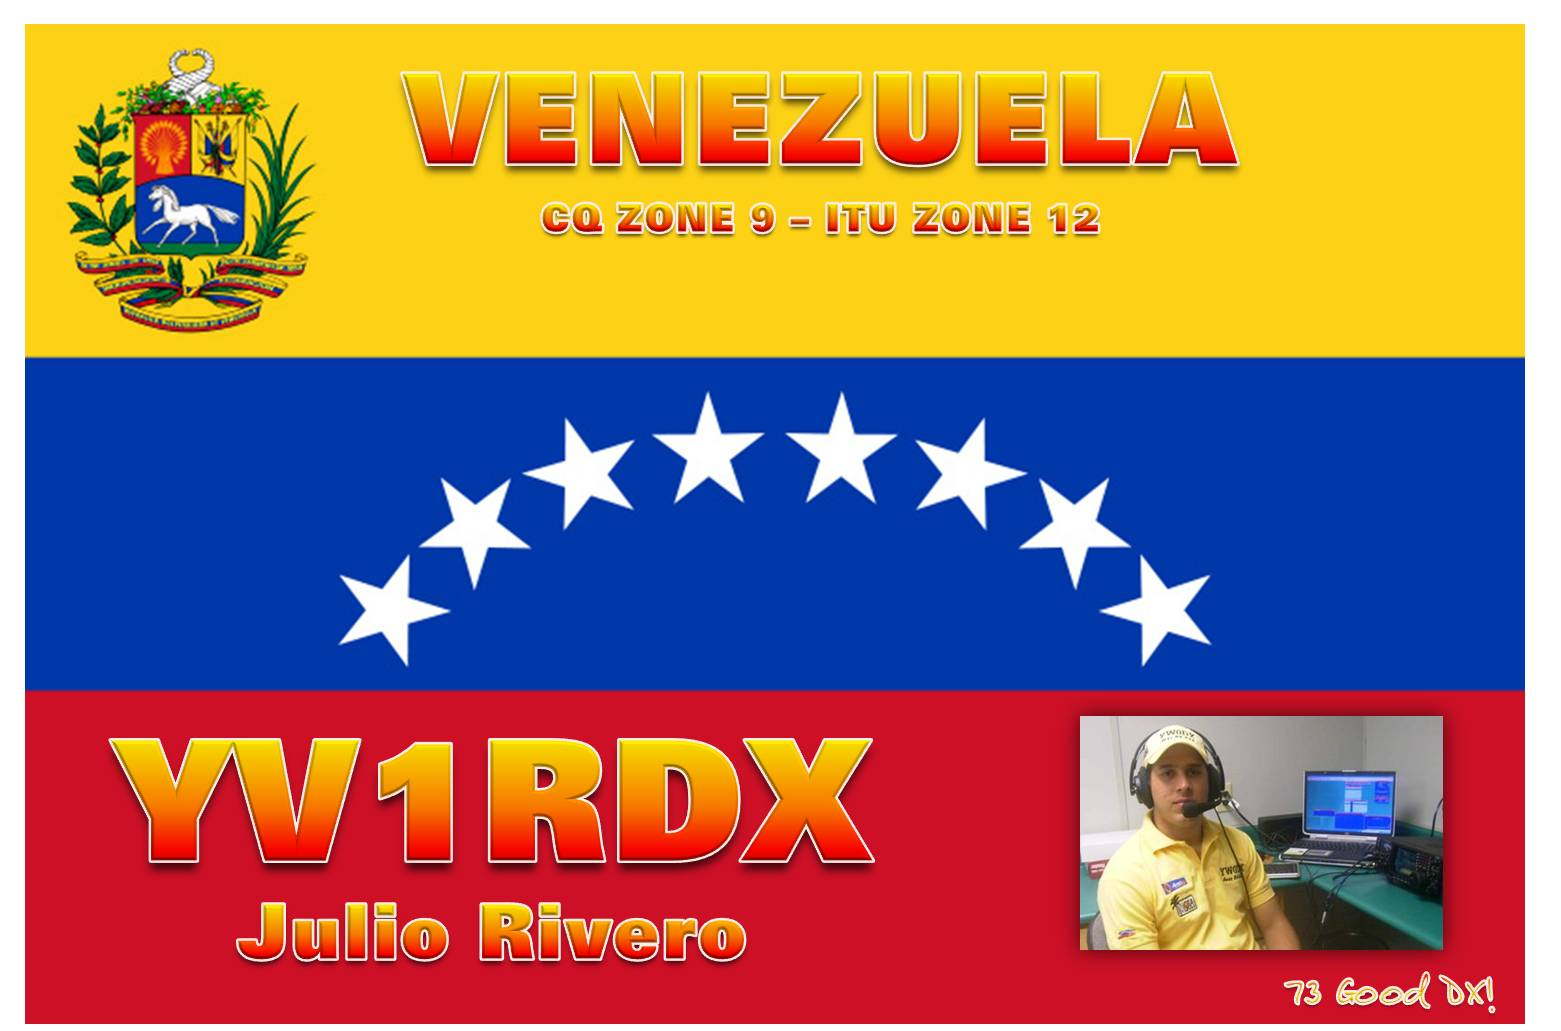 QSL image for YV1RDX